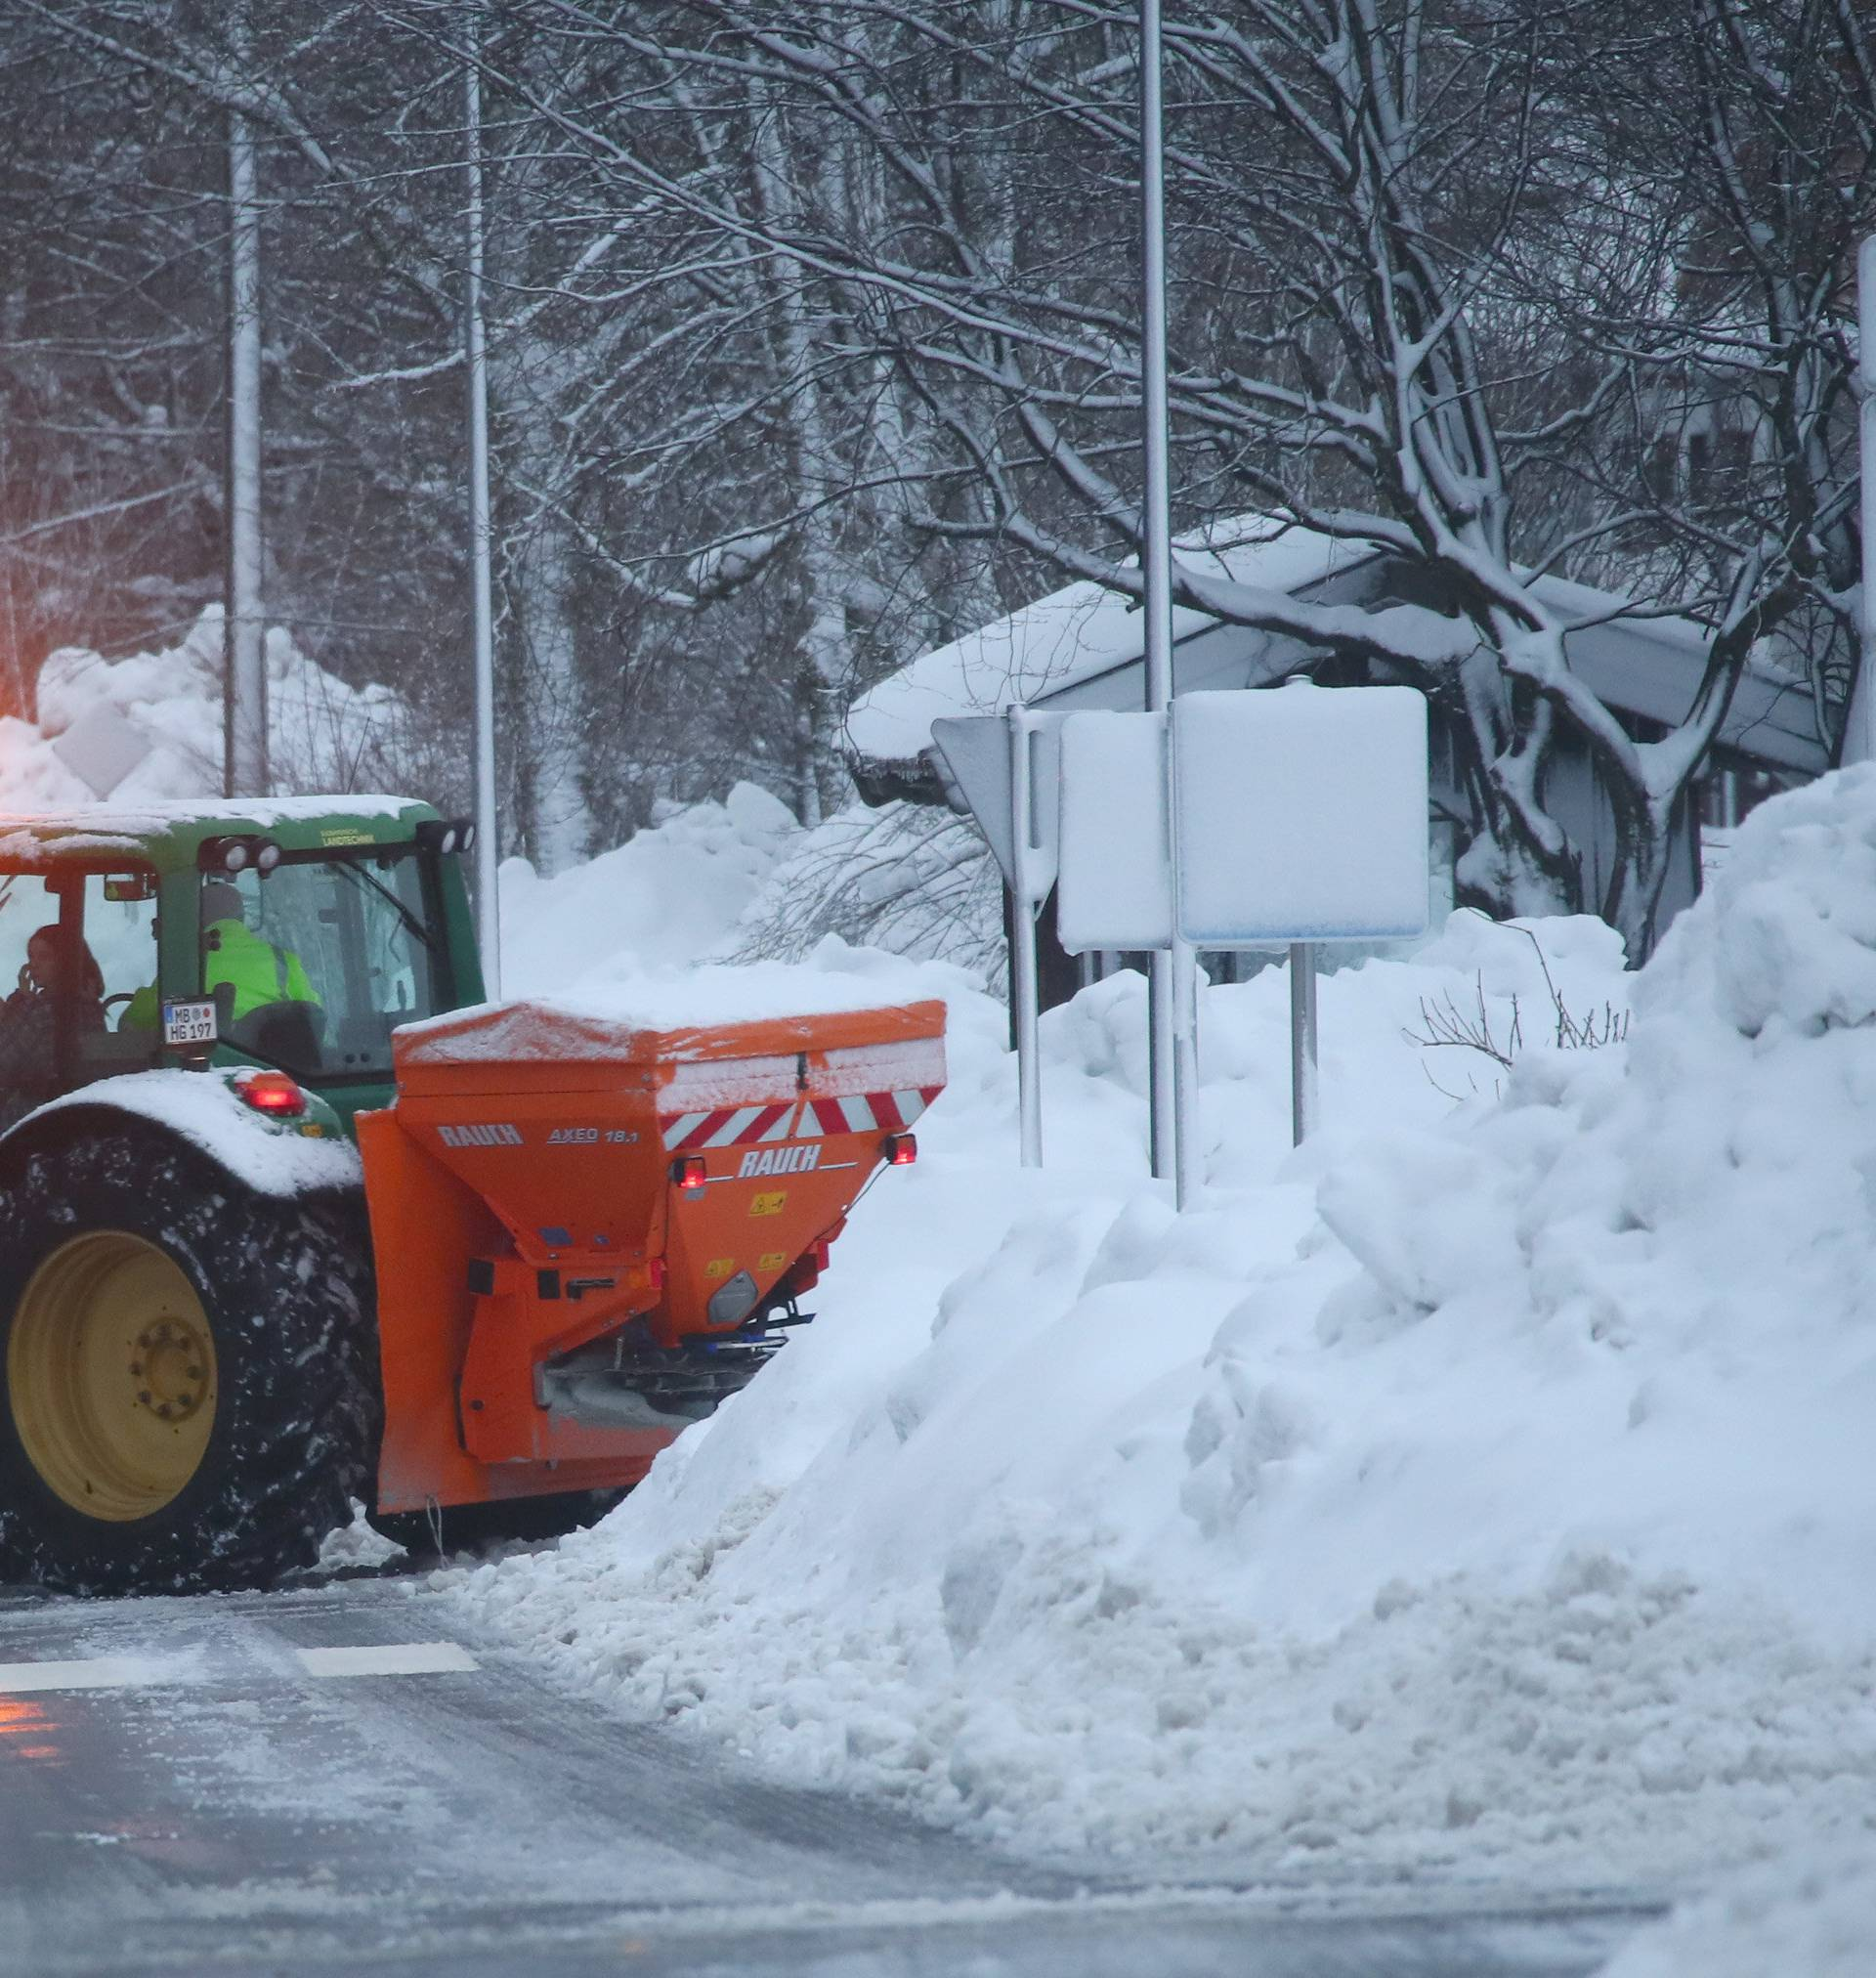 A plough is seen after heavy snowfalls in Warngau